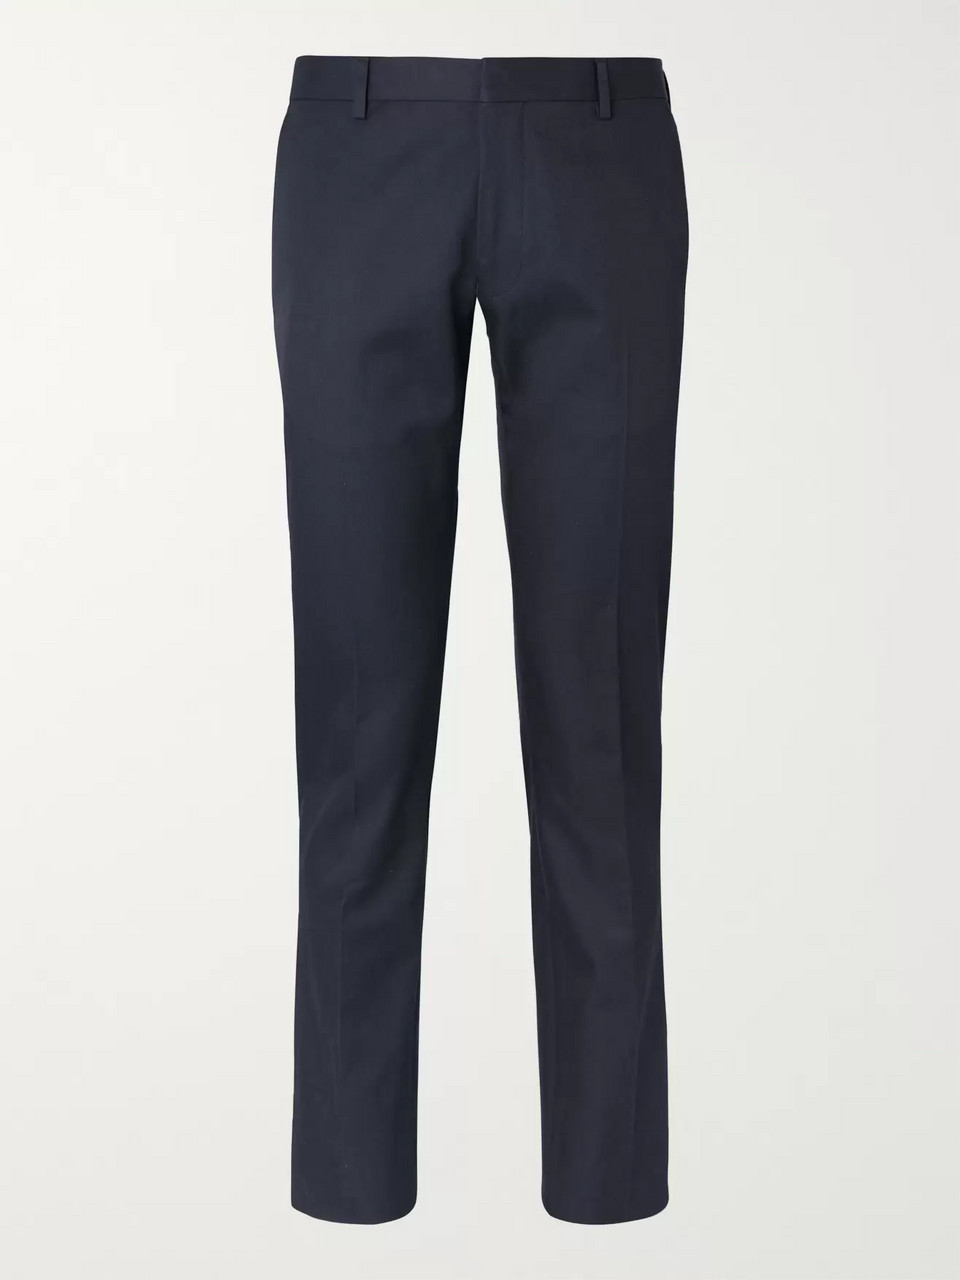 Dries Van Noten Navy Slim-Fit Cotton-Twill Suit Trousers